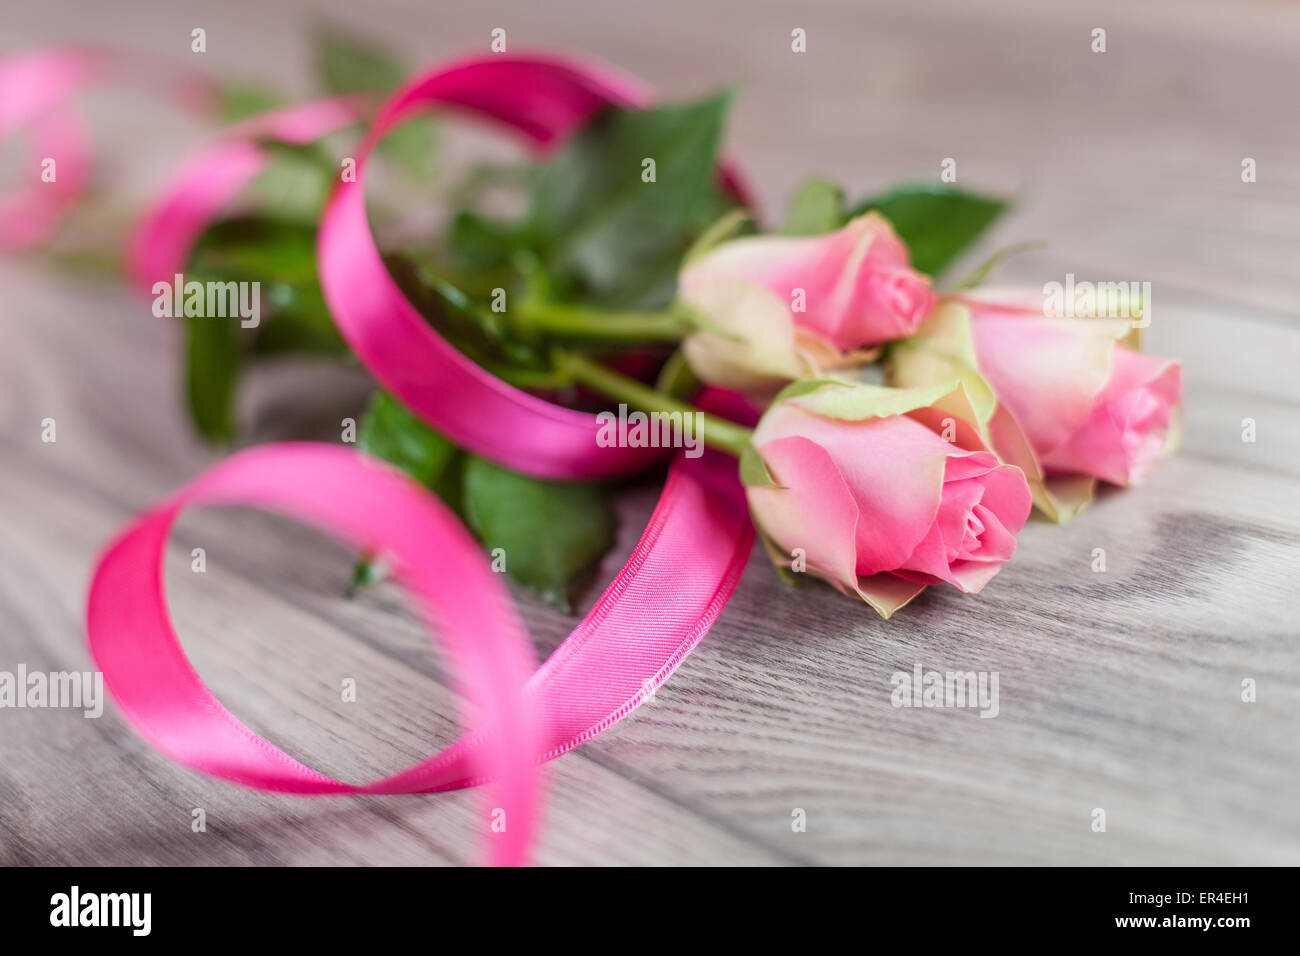 Tulips with a pink ribbon on a wooden table - Stock Image